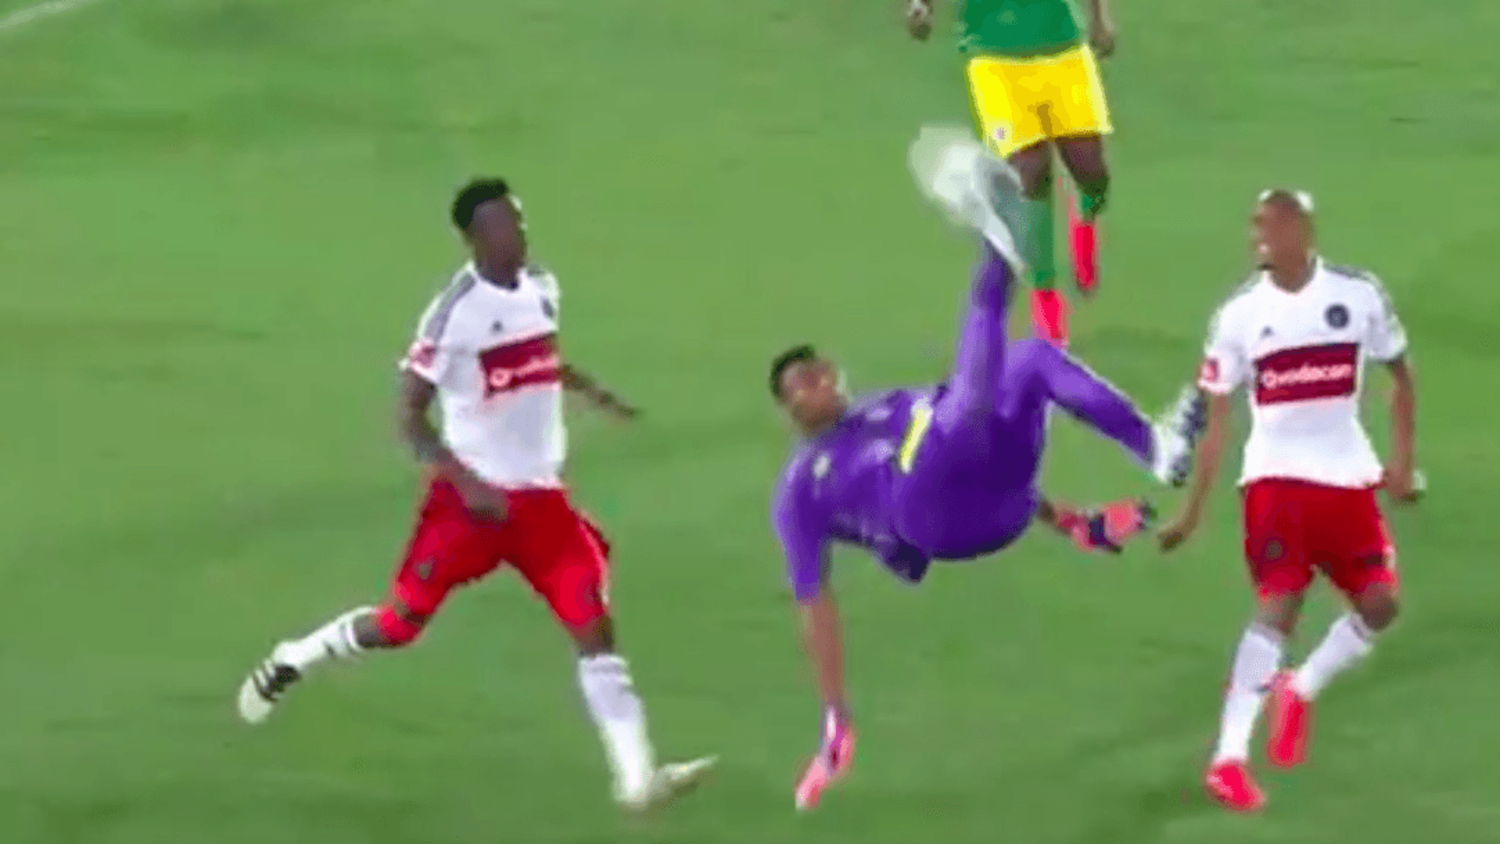 Goalkeeper Masuluke scores incredible last minute overhead kick